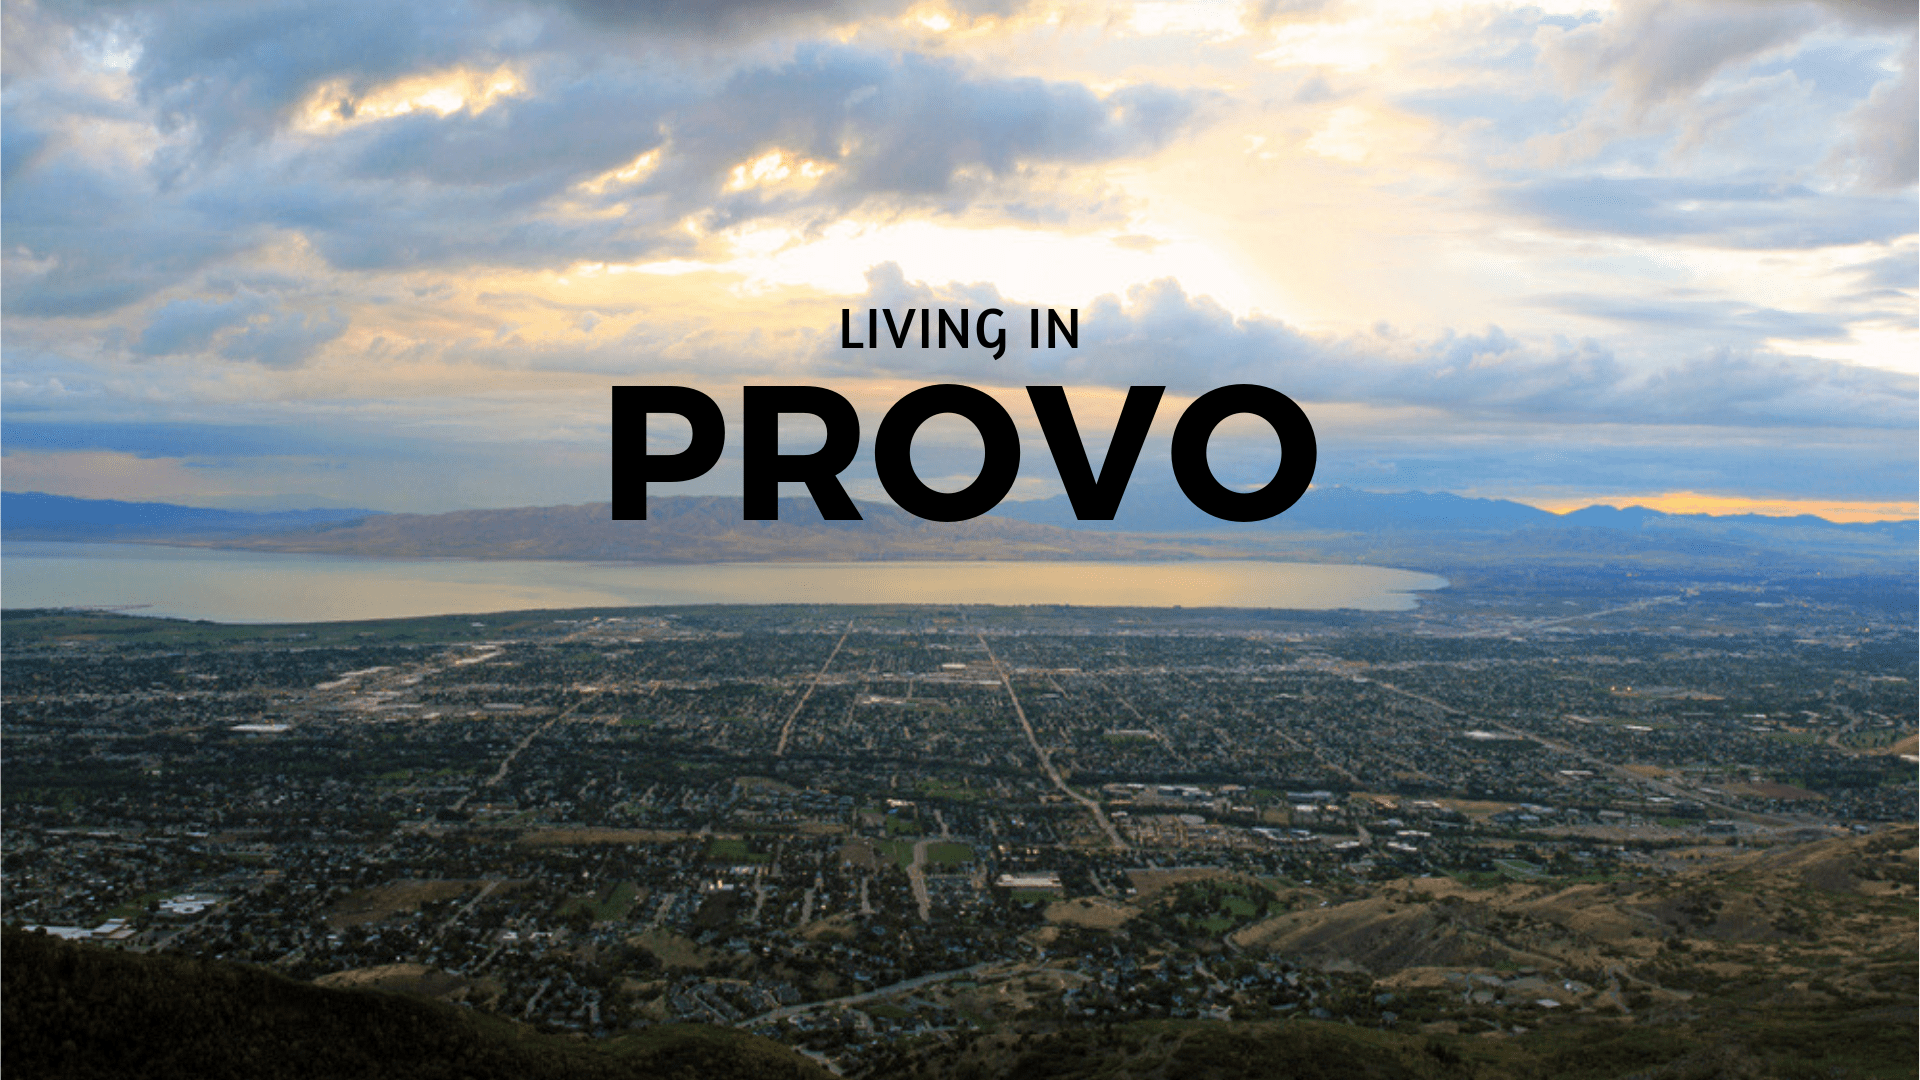 living in Provo